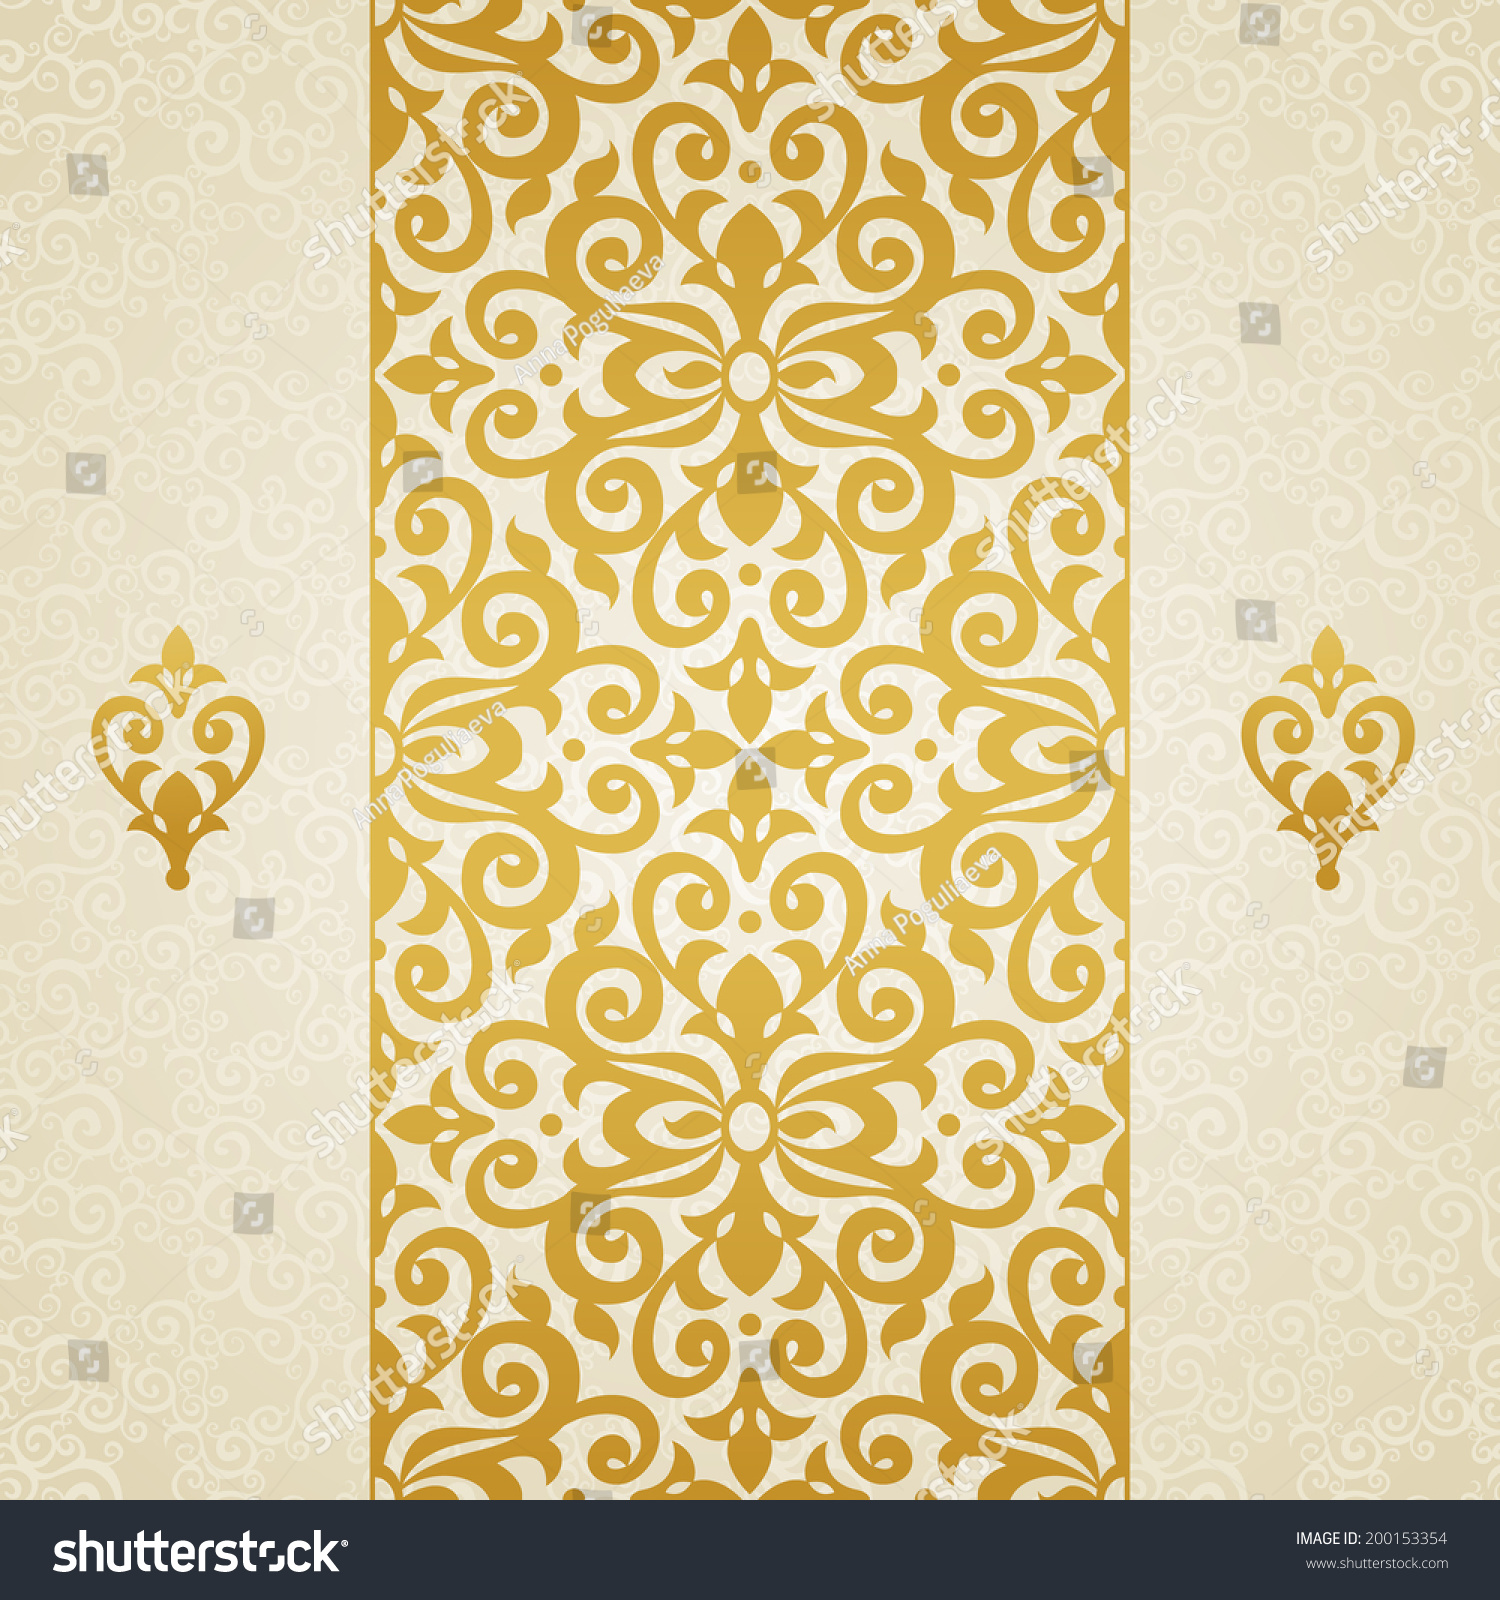 Golden Design Wallpaper : Golden vector seamless border victorian style vectores en